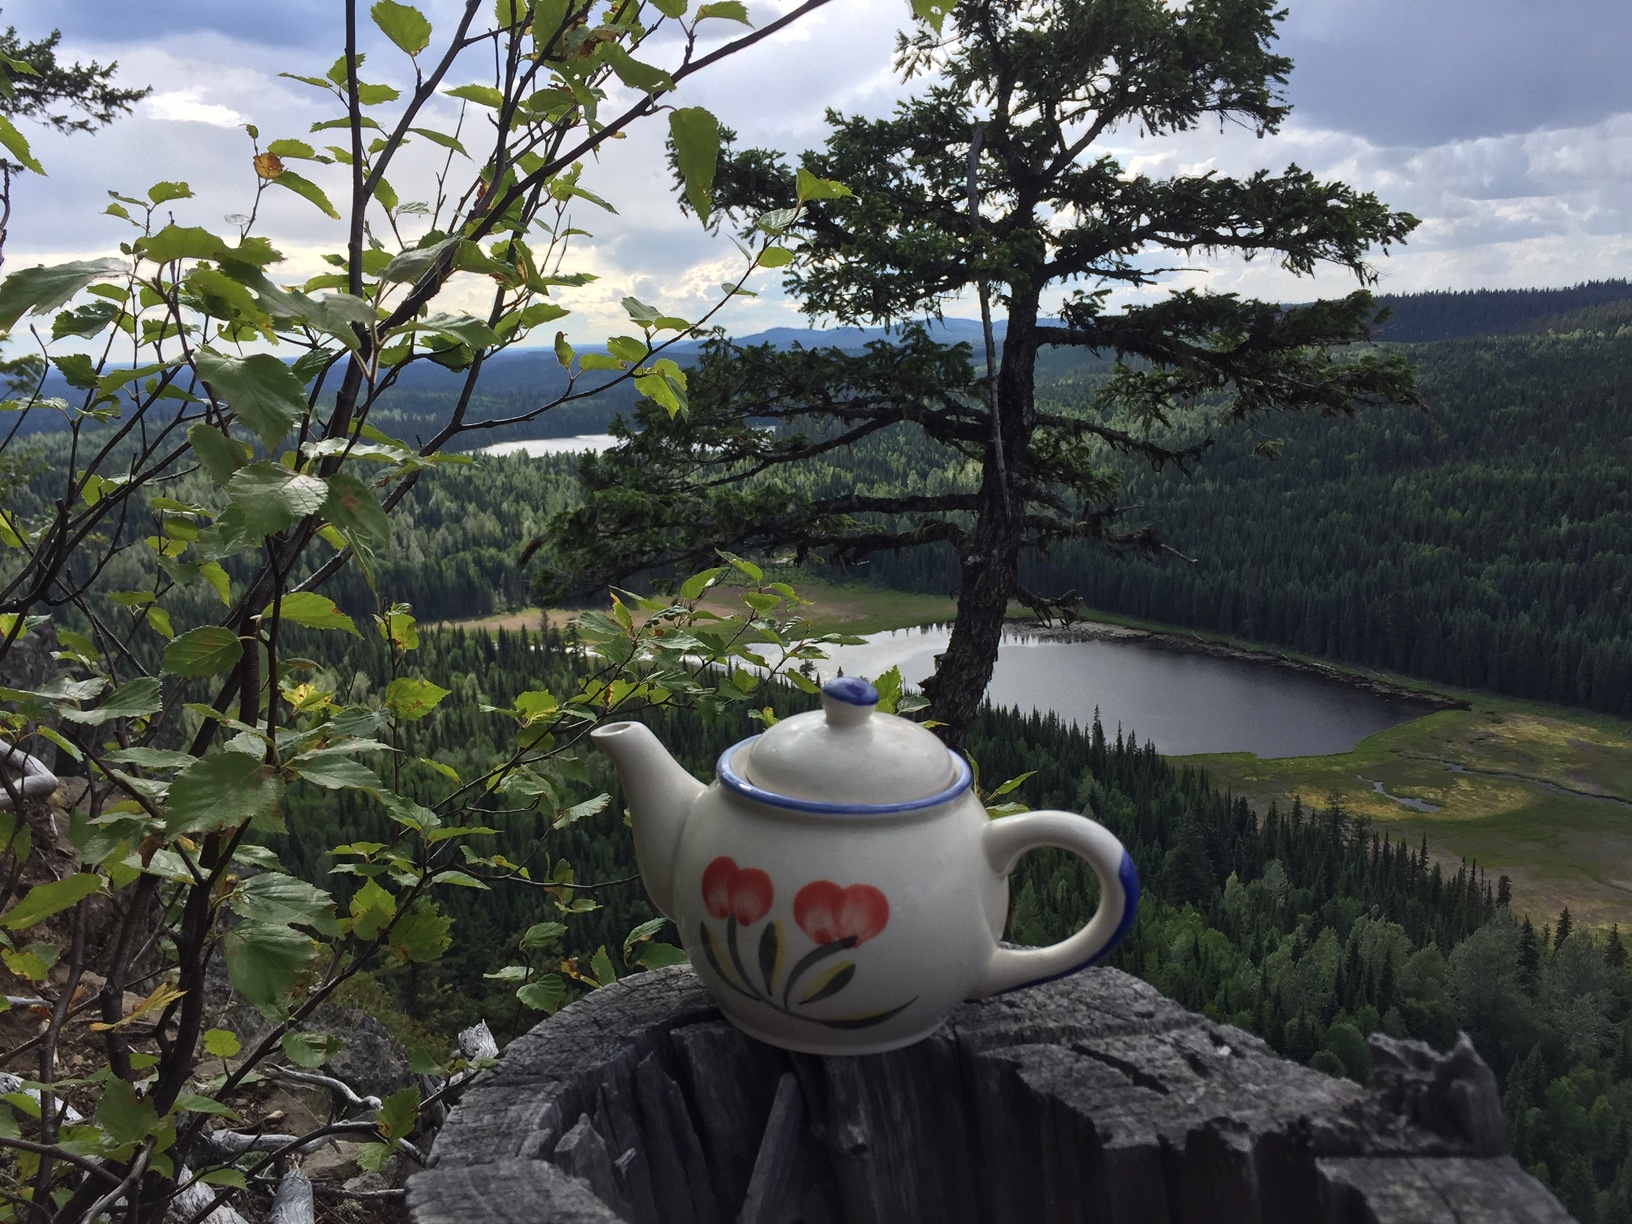 Teapot on ledge with view of lake and forest